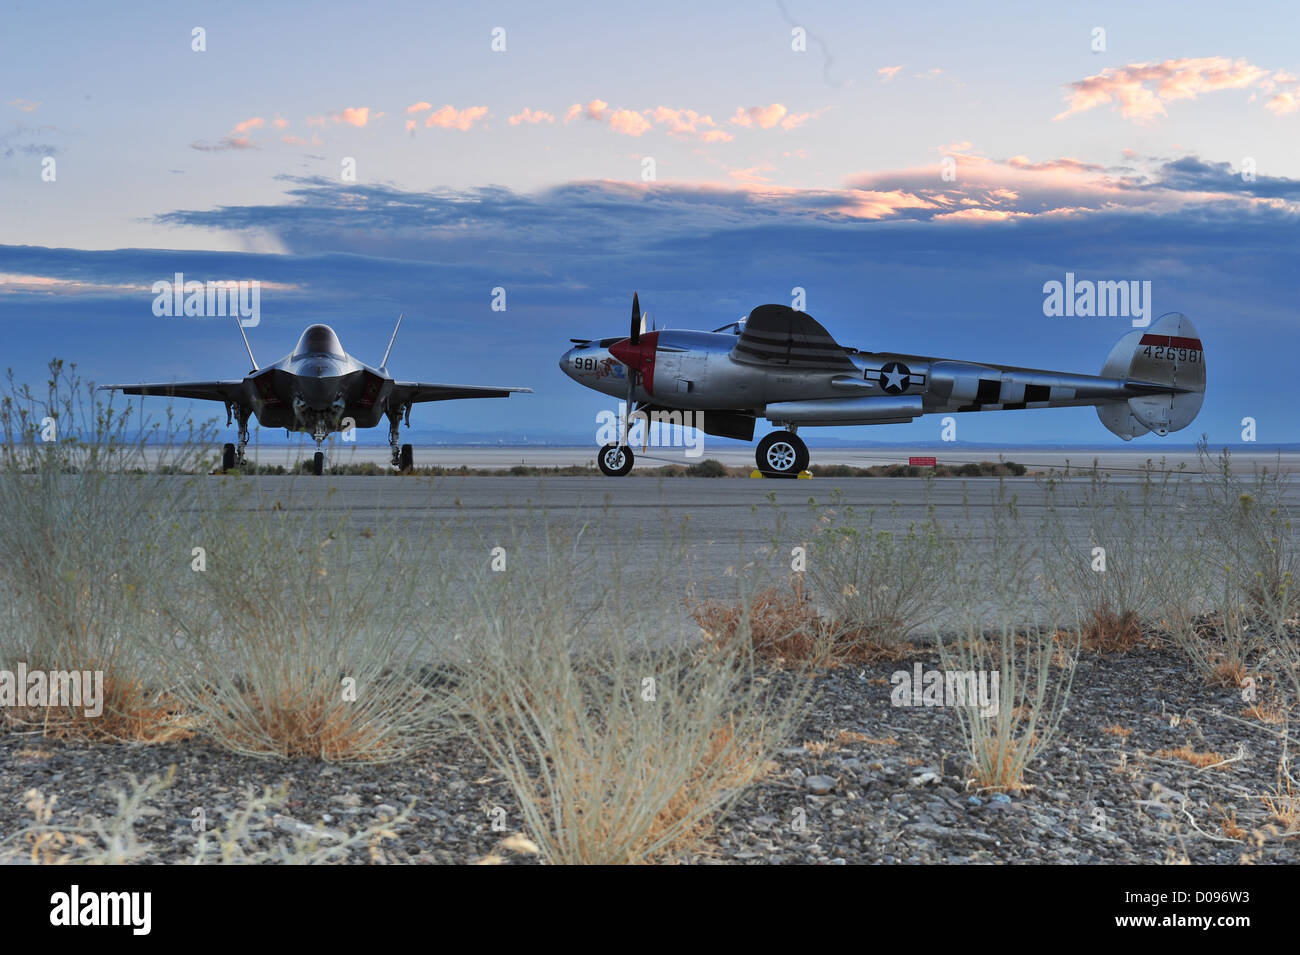 The Lockheed Martin F-35 Lightning II meets its namesake, the P-38 Lockheed Lightning - Stock Image